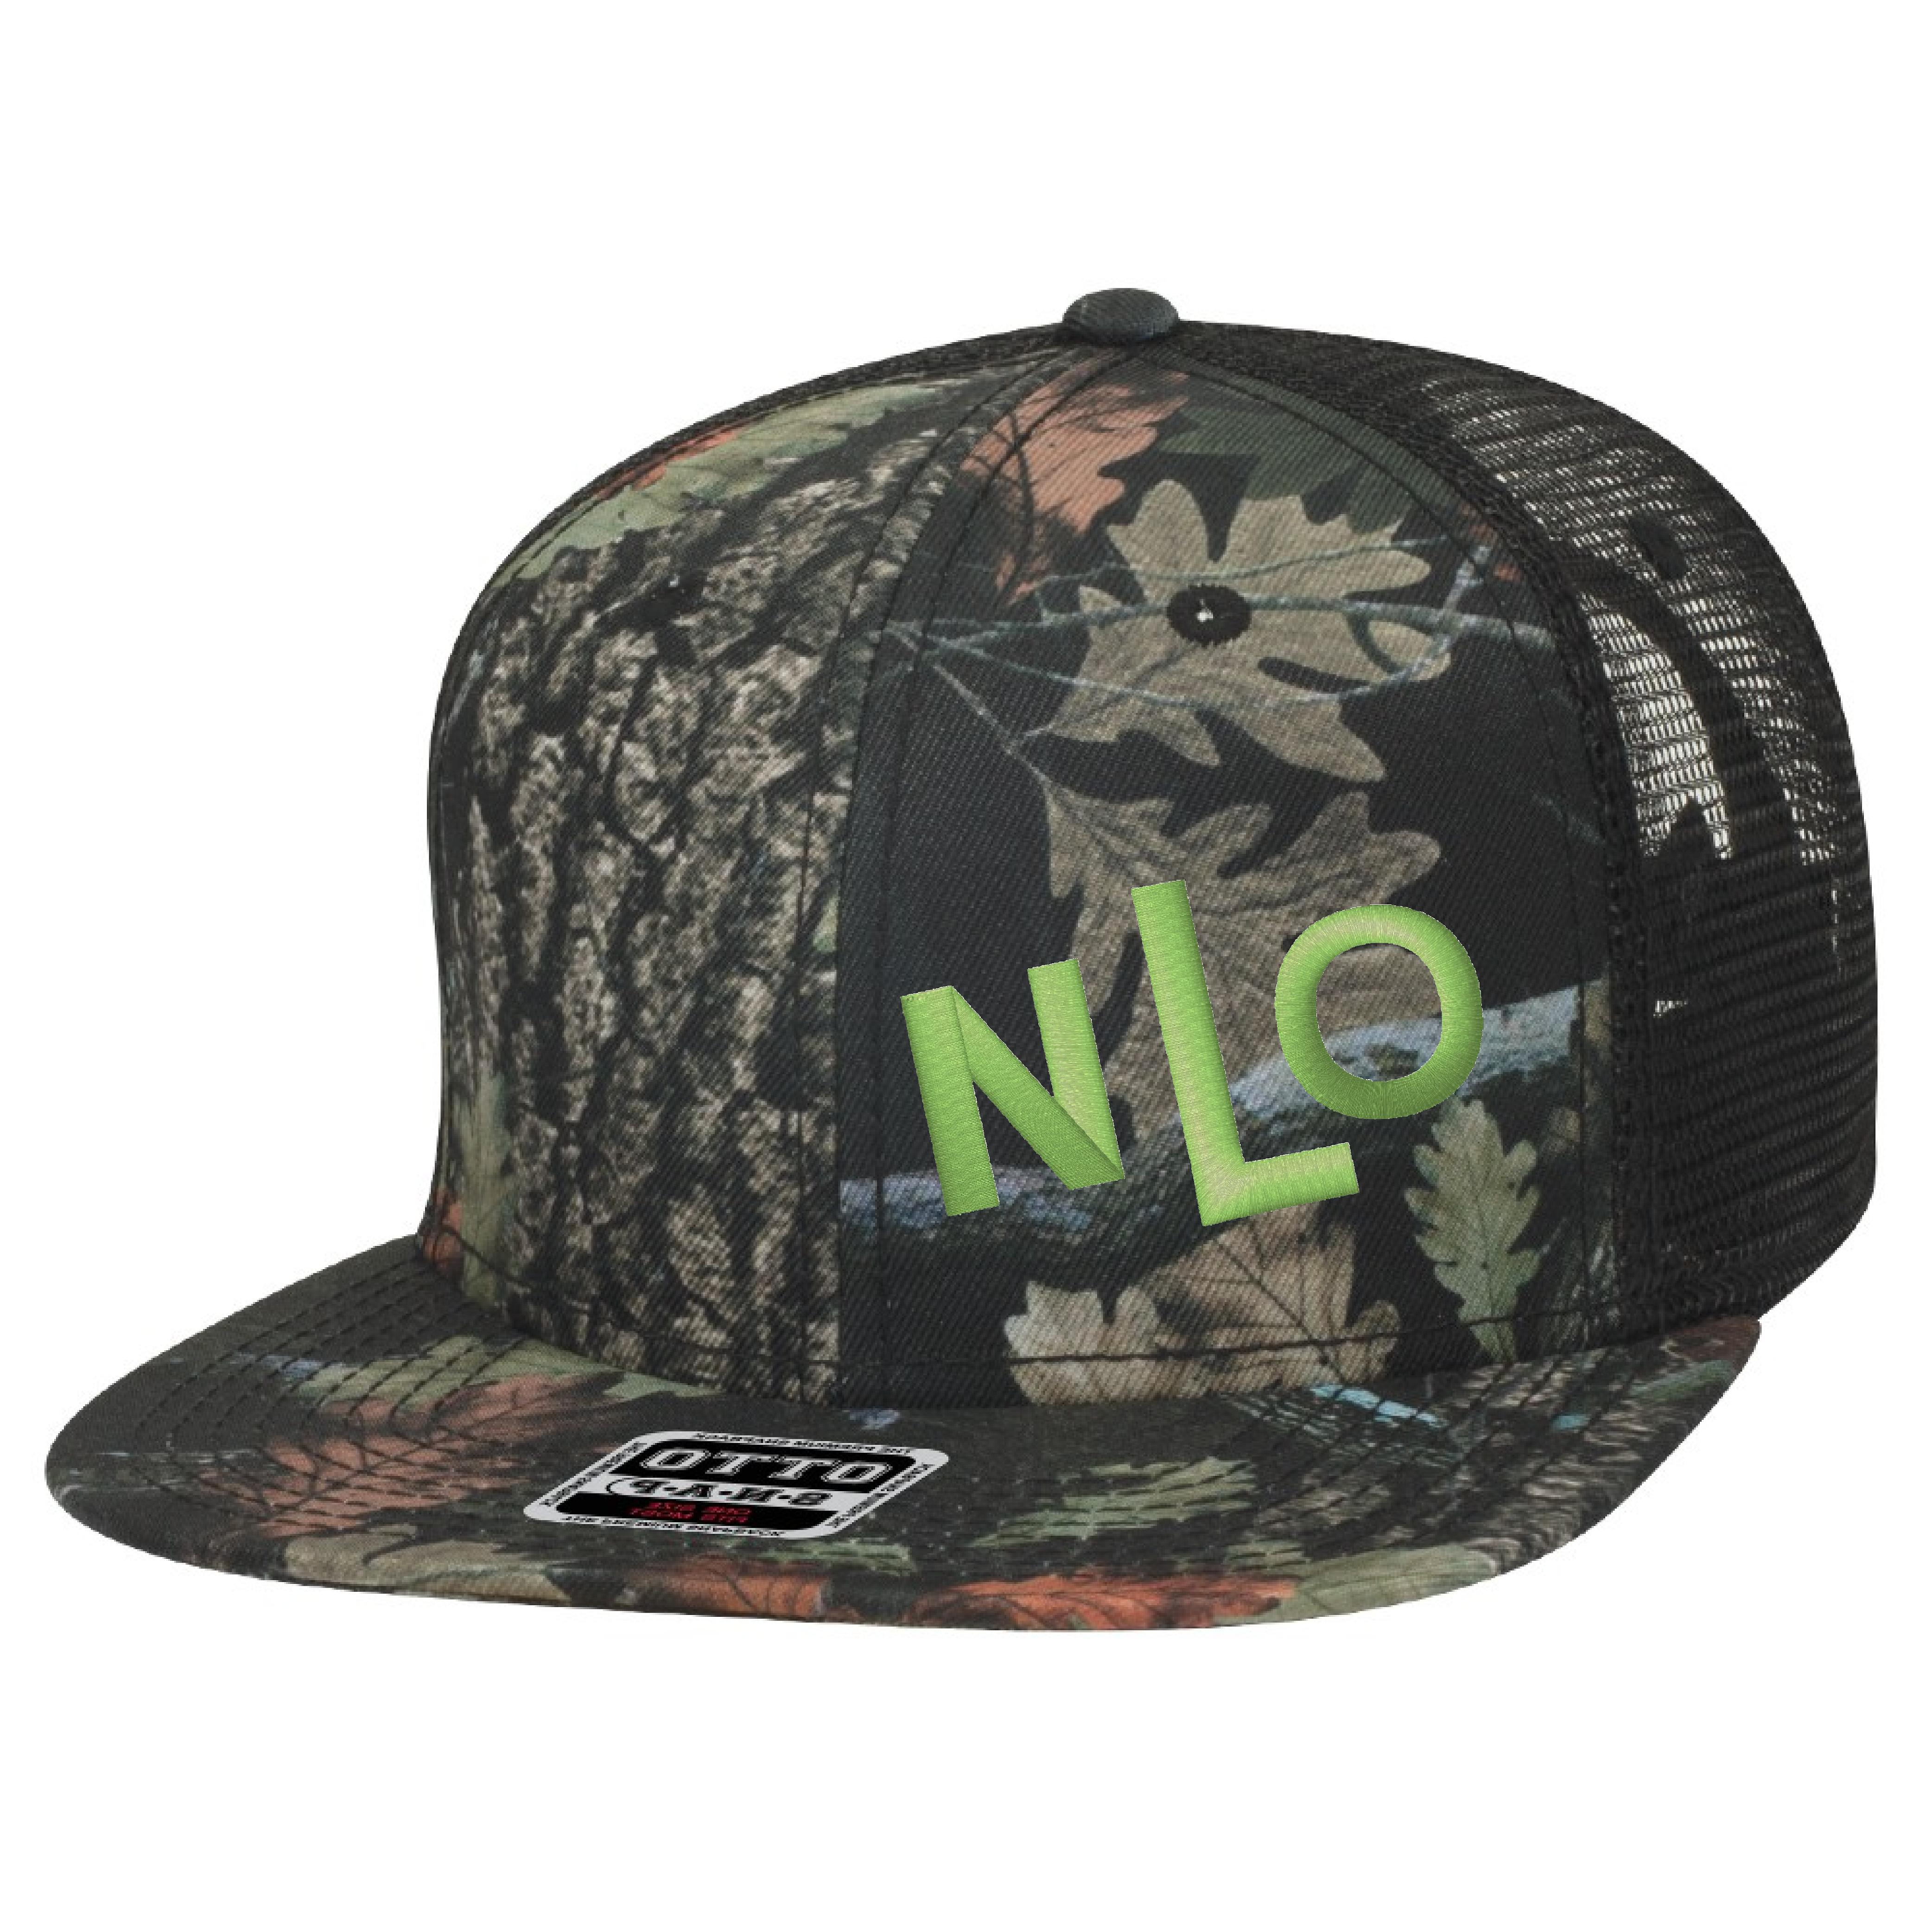 4030d784f NLO Camo Dark and Lime Green Snapback Trucker Hat